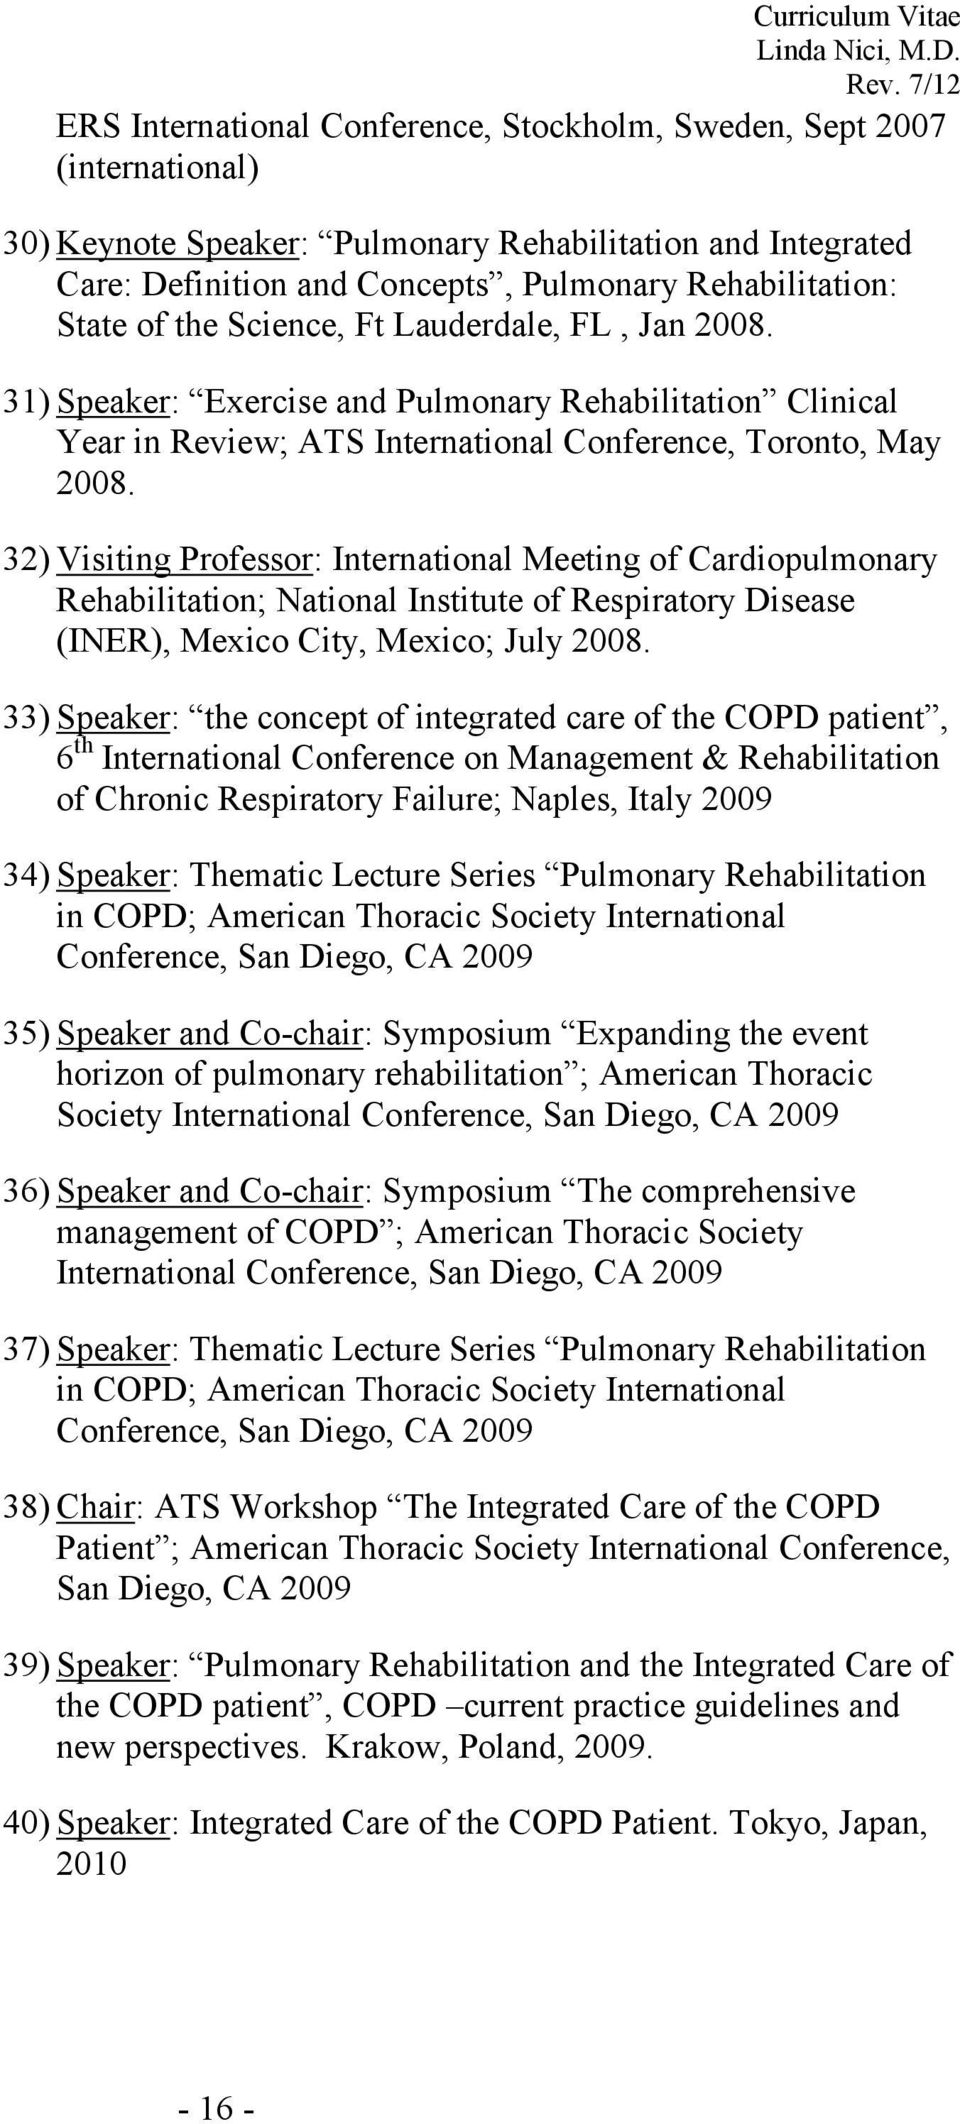 32) Visiting Professor: International Meeting of Cardiopulmonary Rehabilitation; National Institute of Respiratory Disease (INER), Mexico City, Mexico; July 2008.